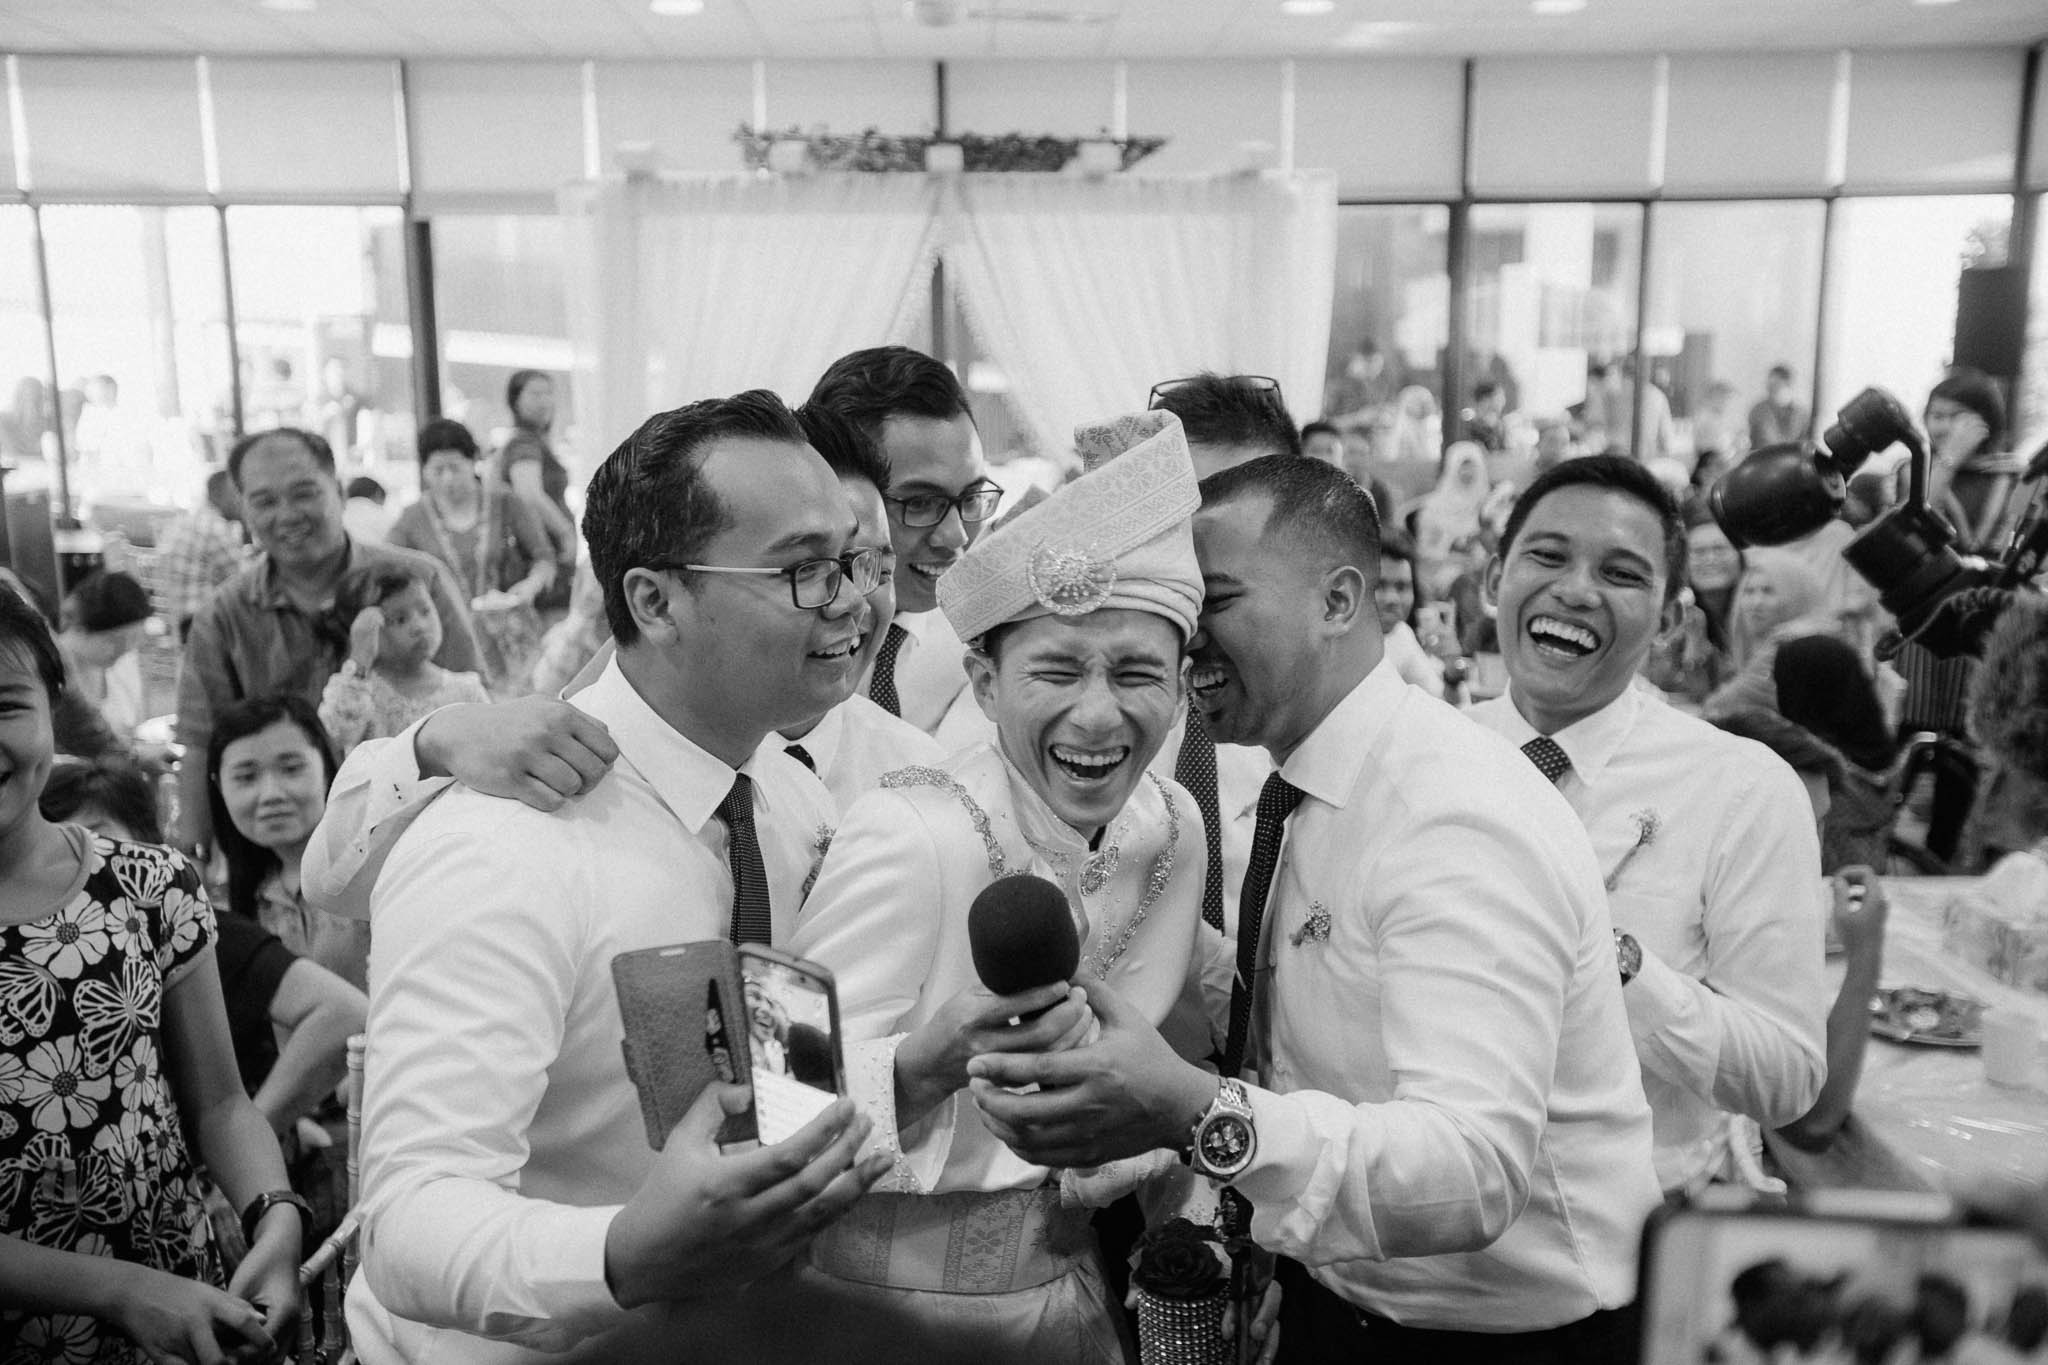 singapore-wedding-photographer-wedding-halimah-muhsin-037.jpg